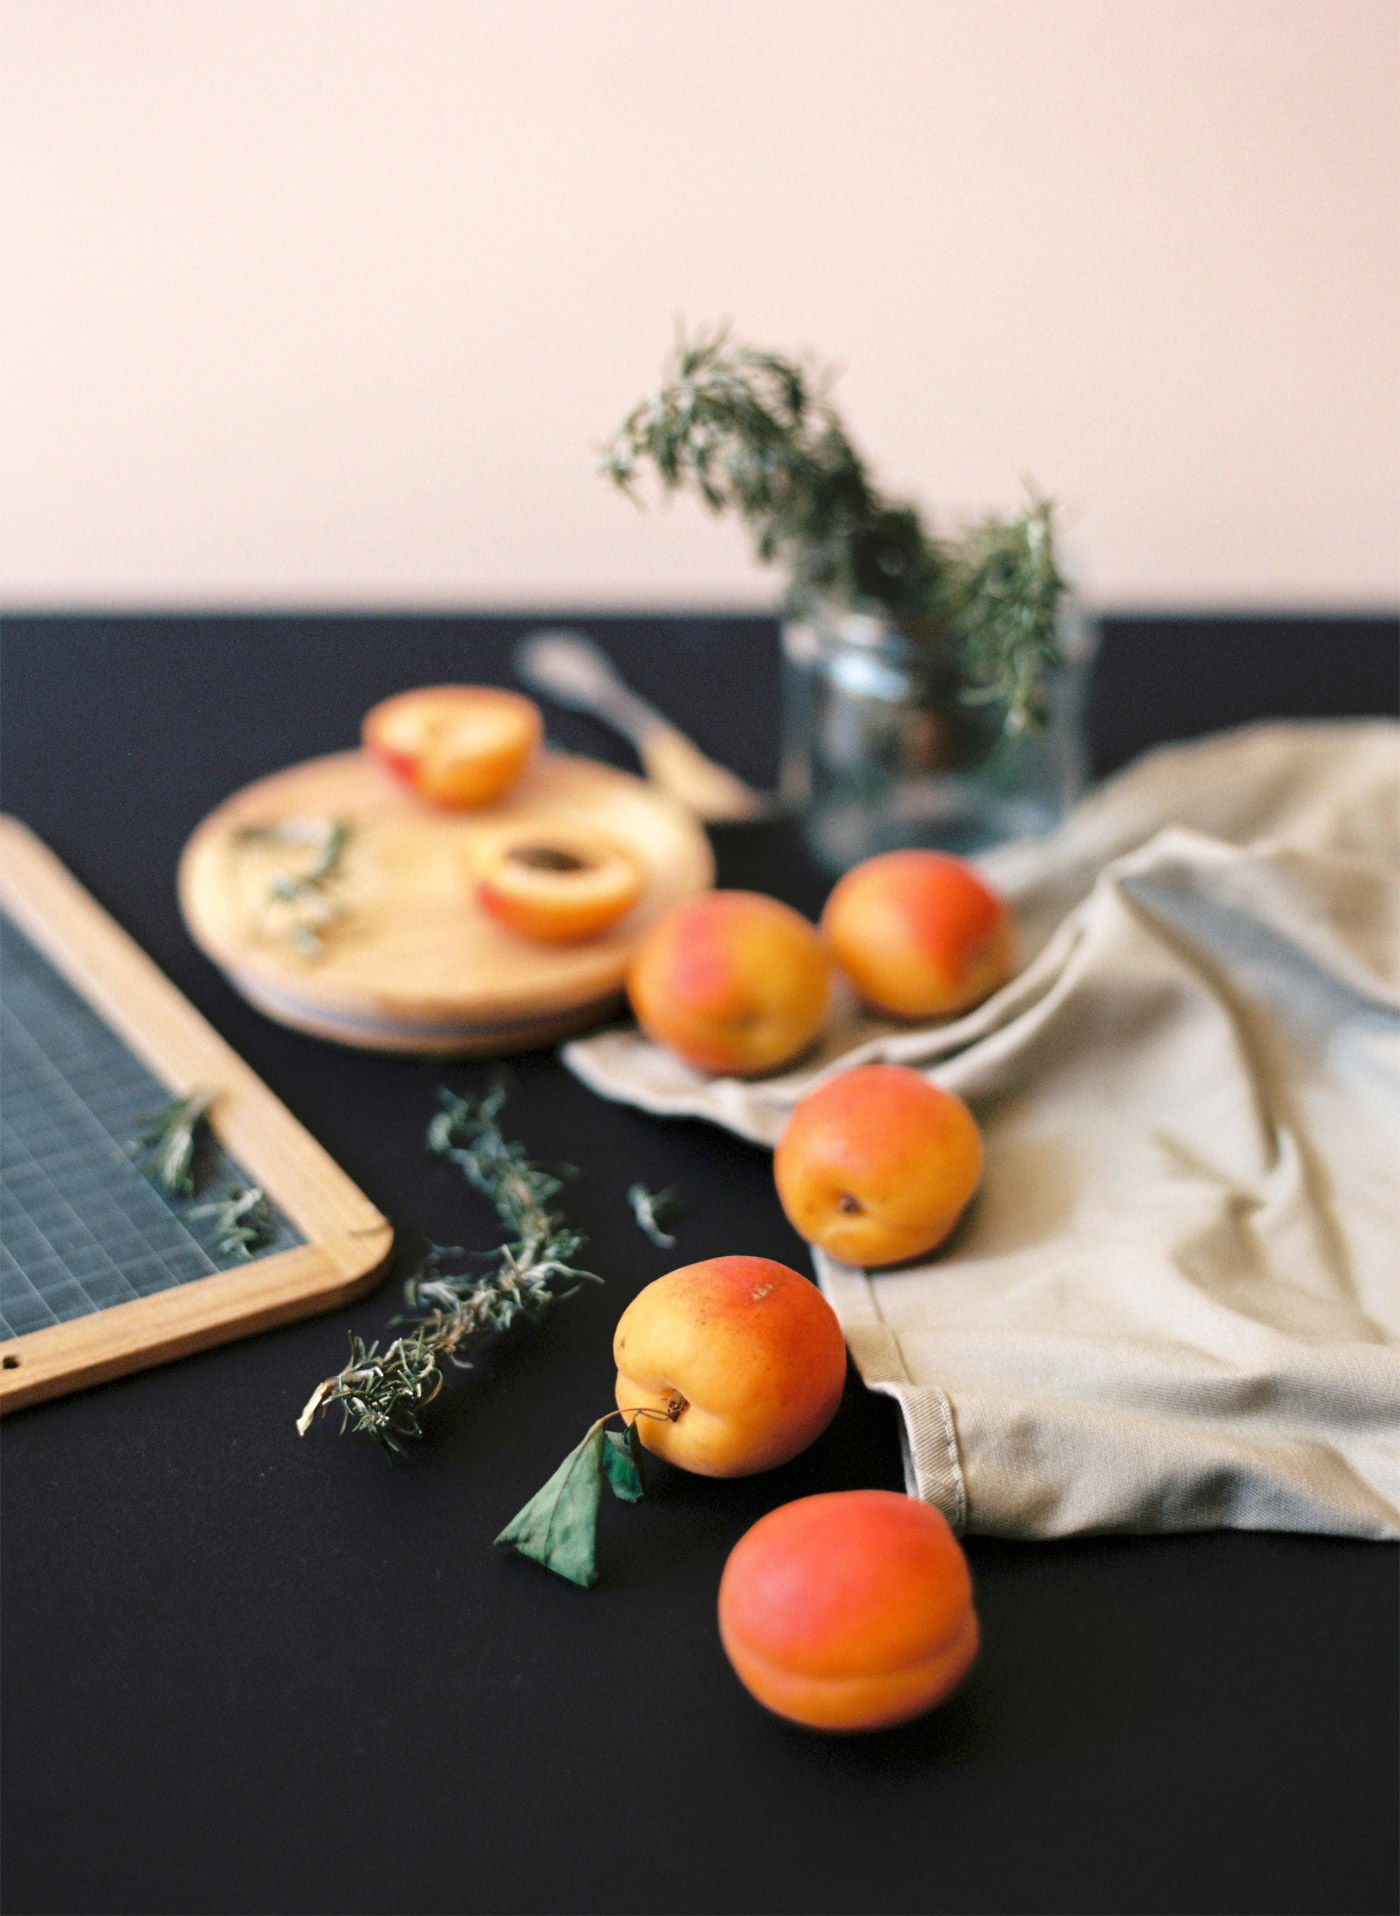 Blanccoco_Rustic_pie_styliste_photographe_culinaire-21